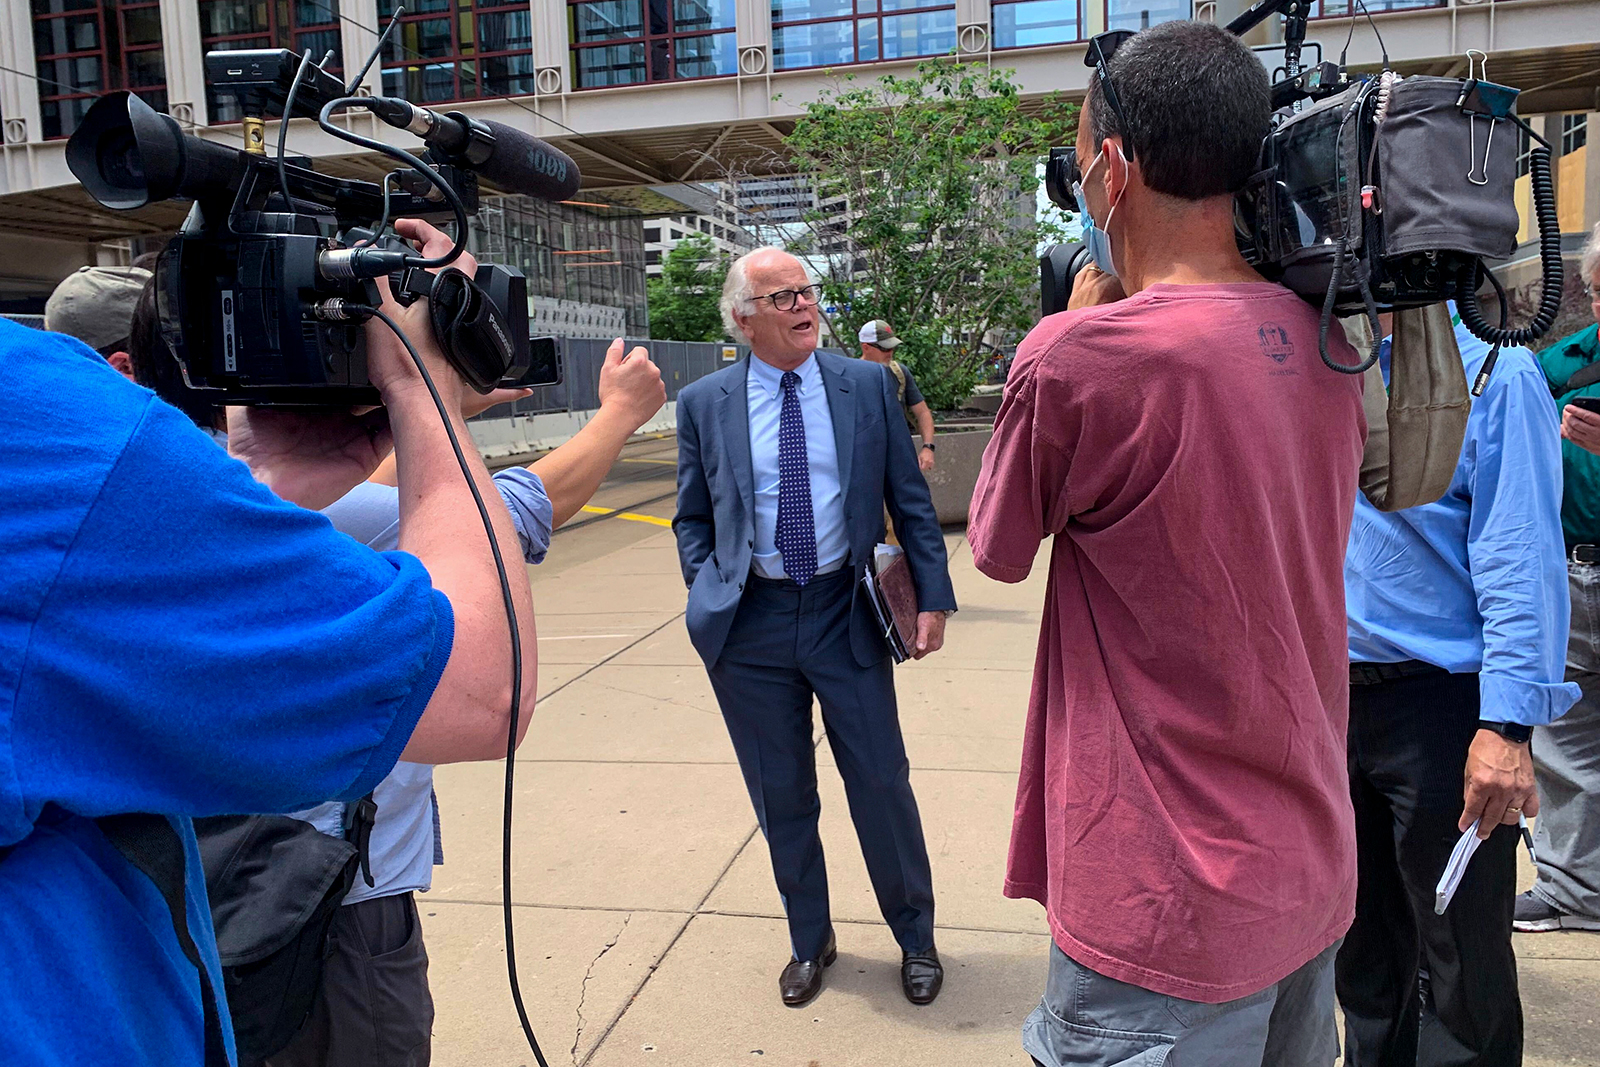 Earl Gray, defense attorney for former Minneapolis police officer Thomas Lane, talks to reporters on Thursday, June 4, outside court in downtown Minneapolis.